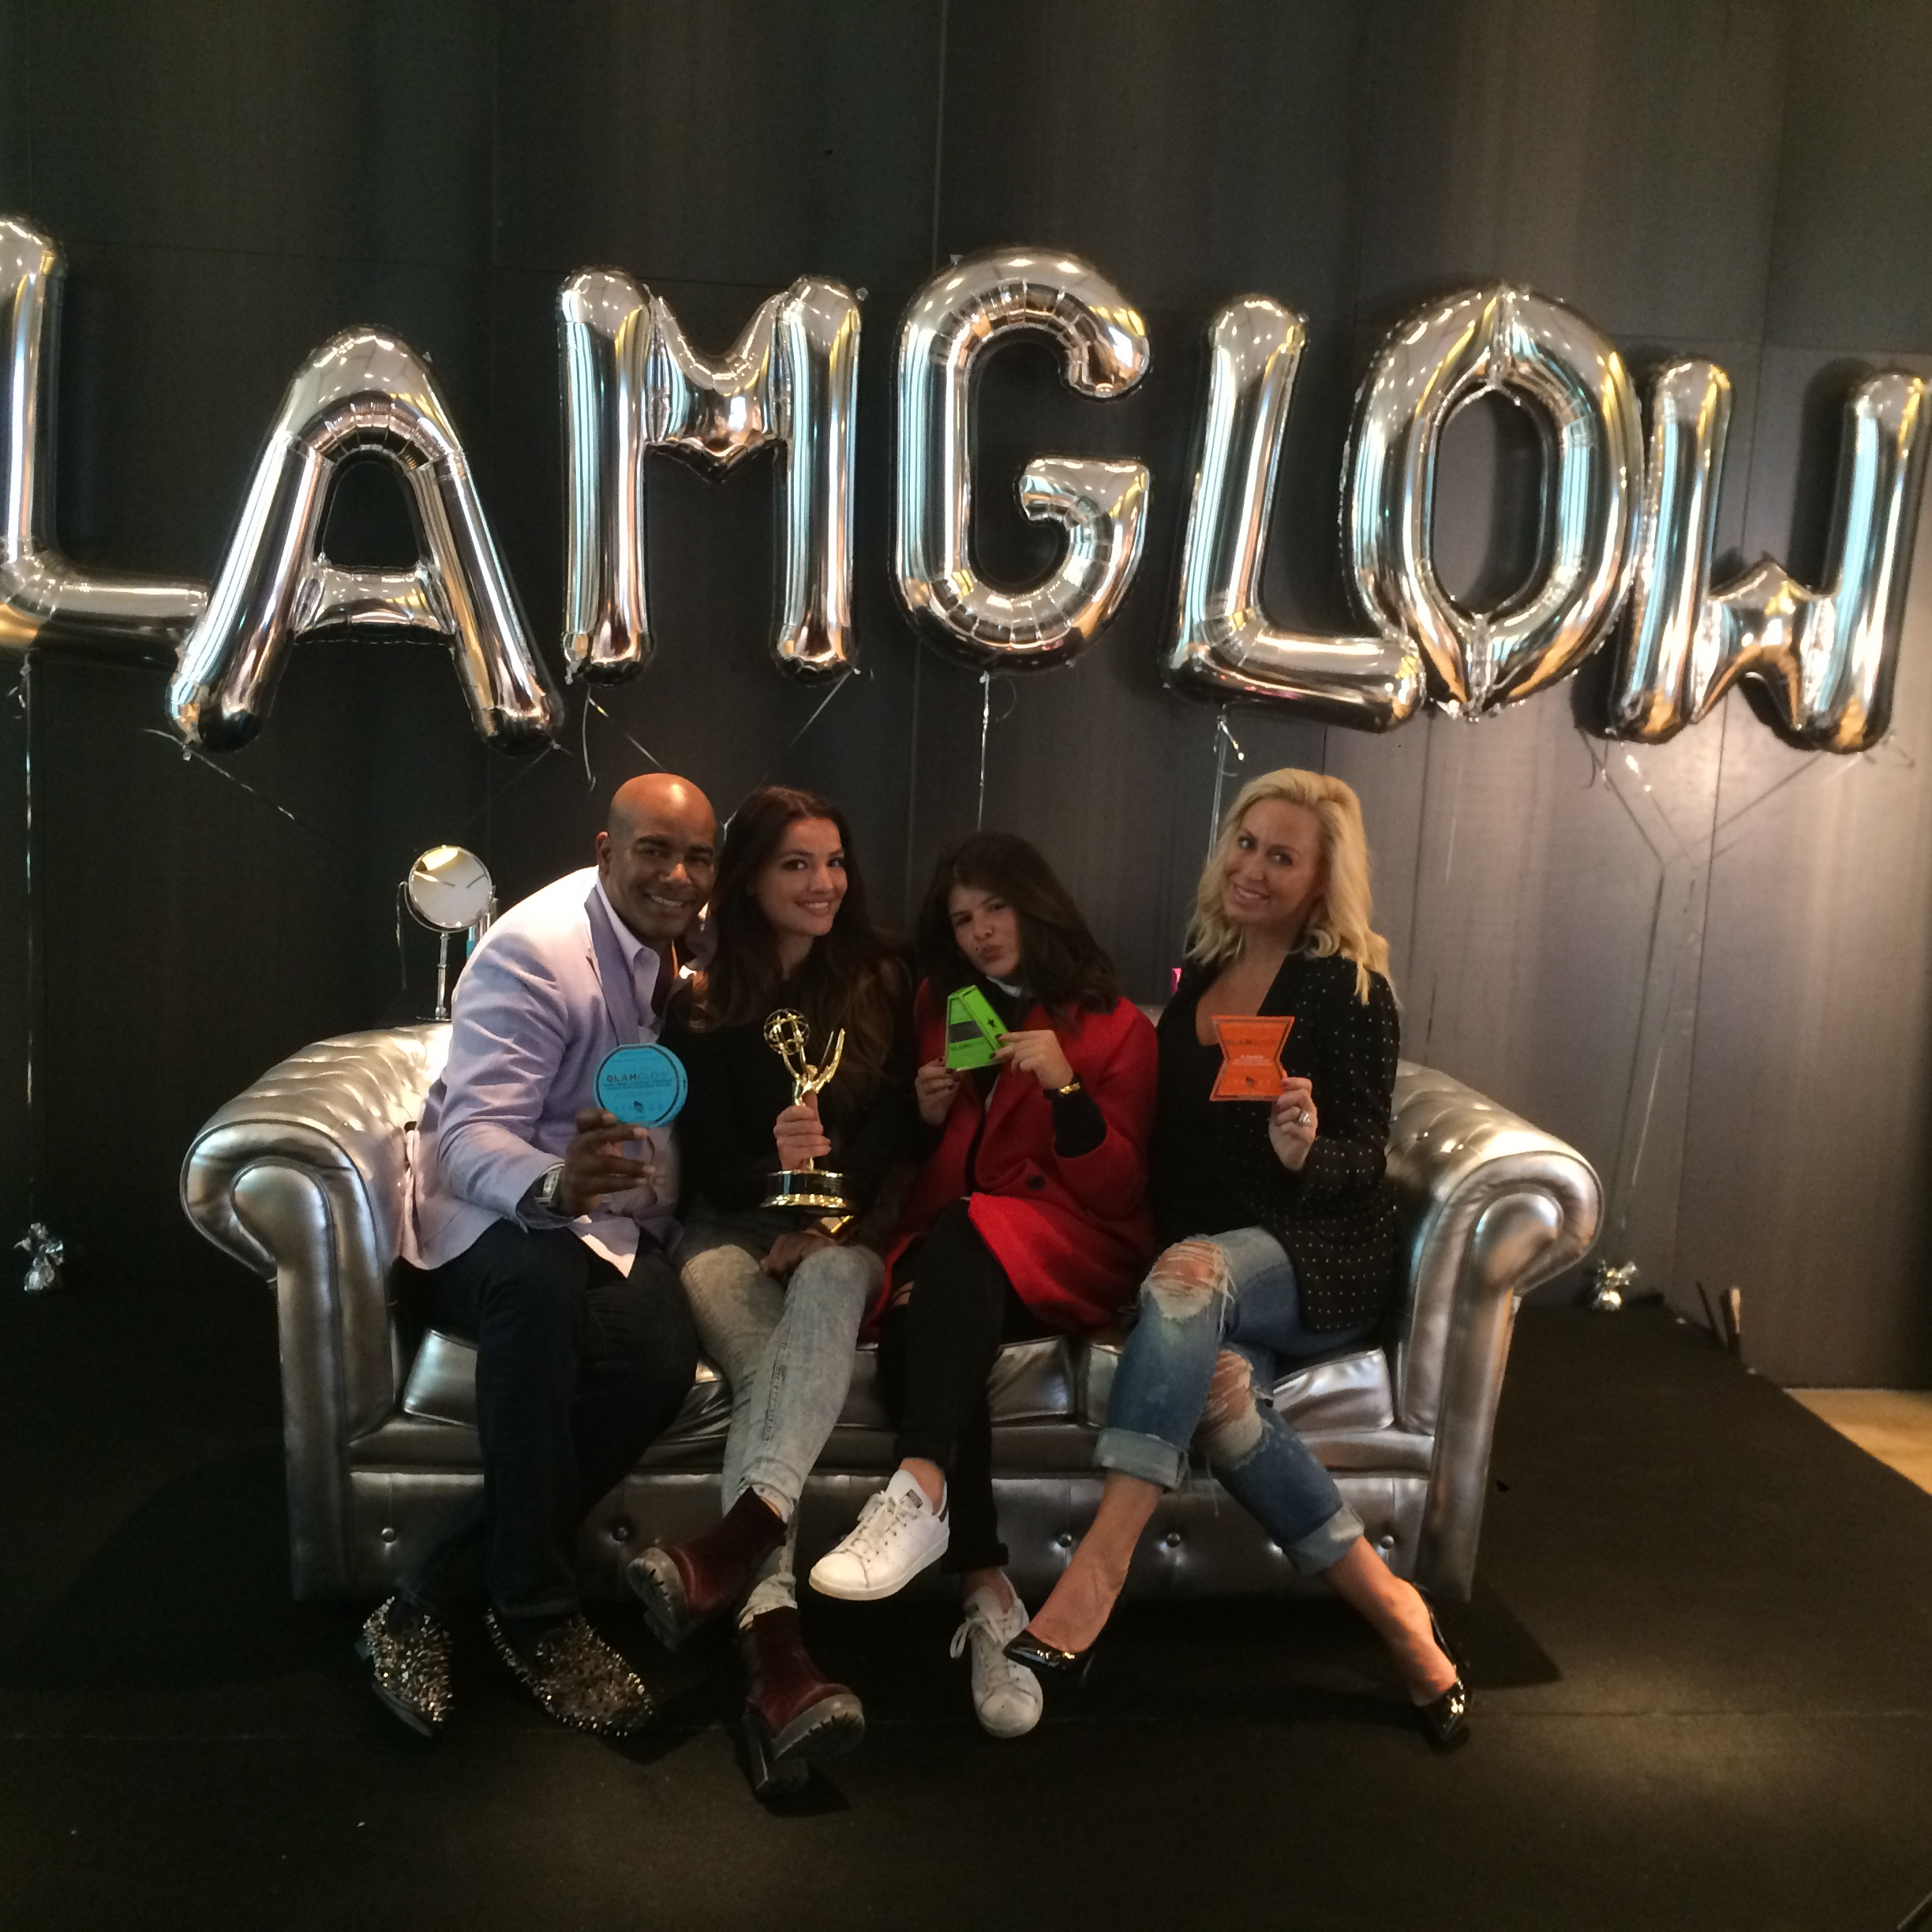 Event: Glamglow launch